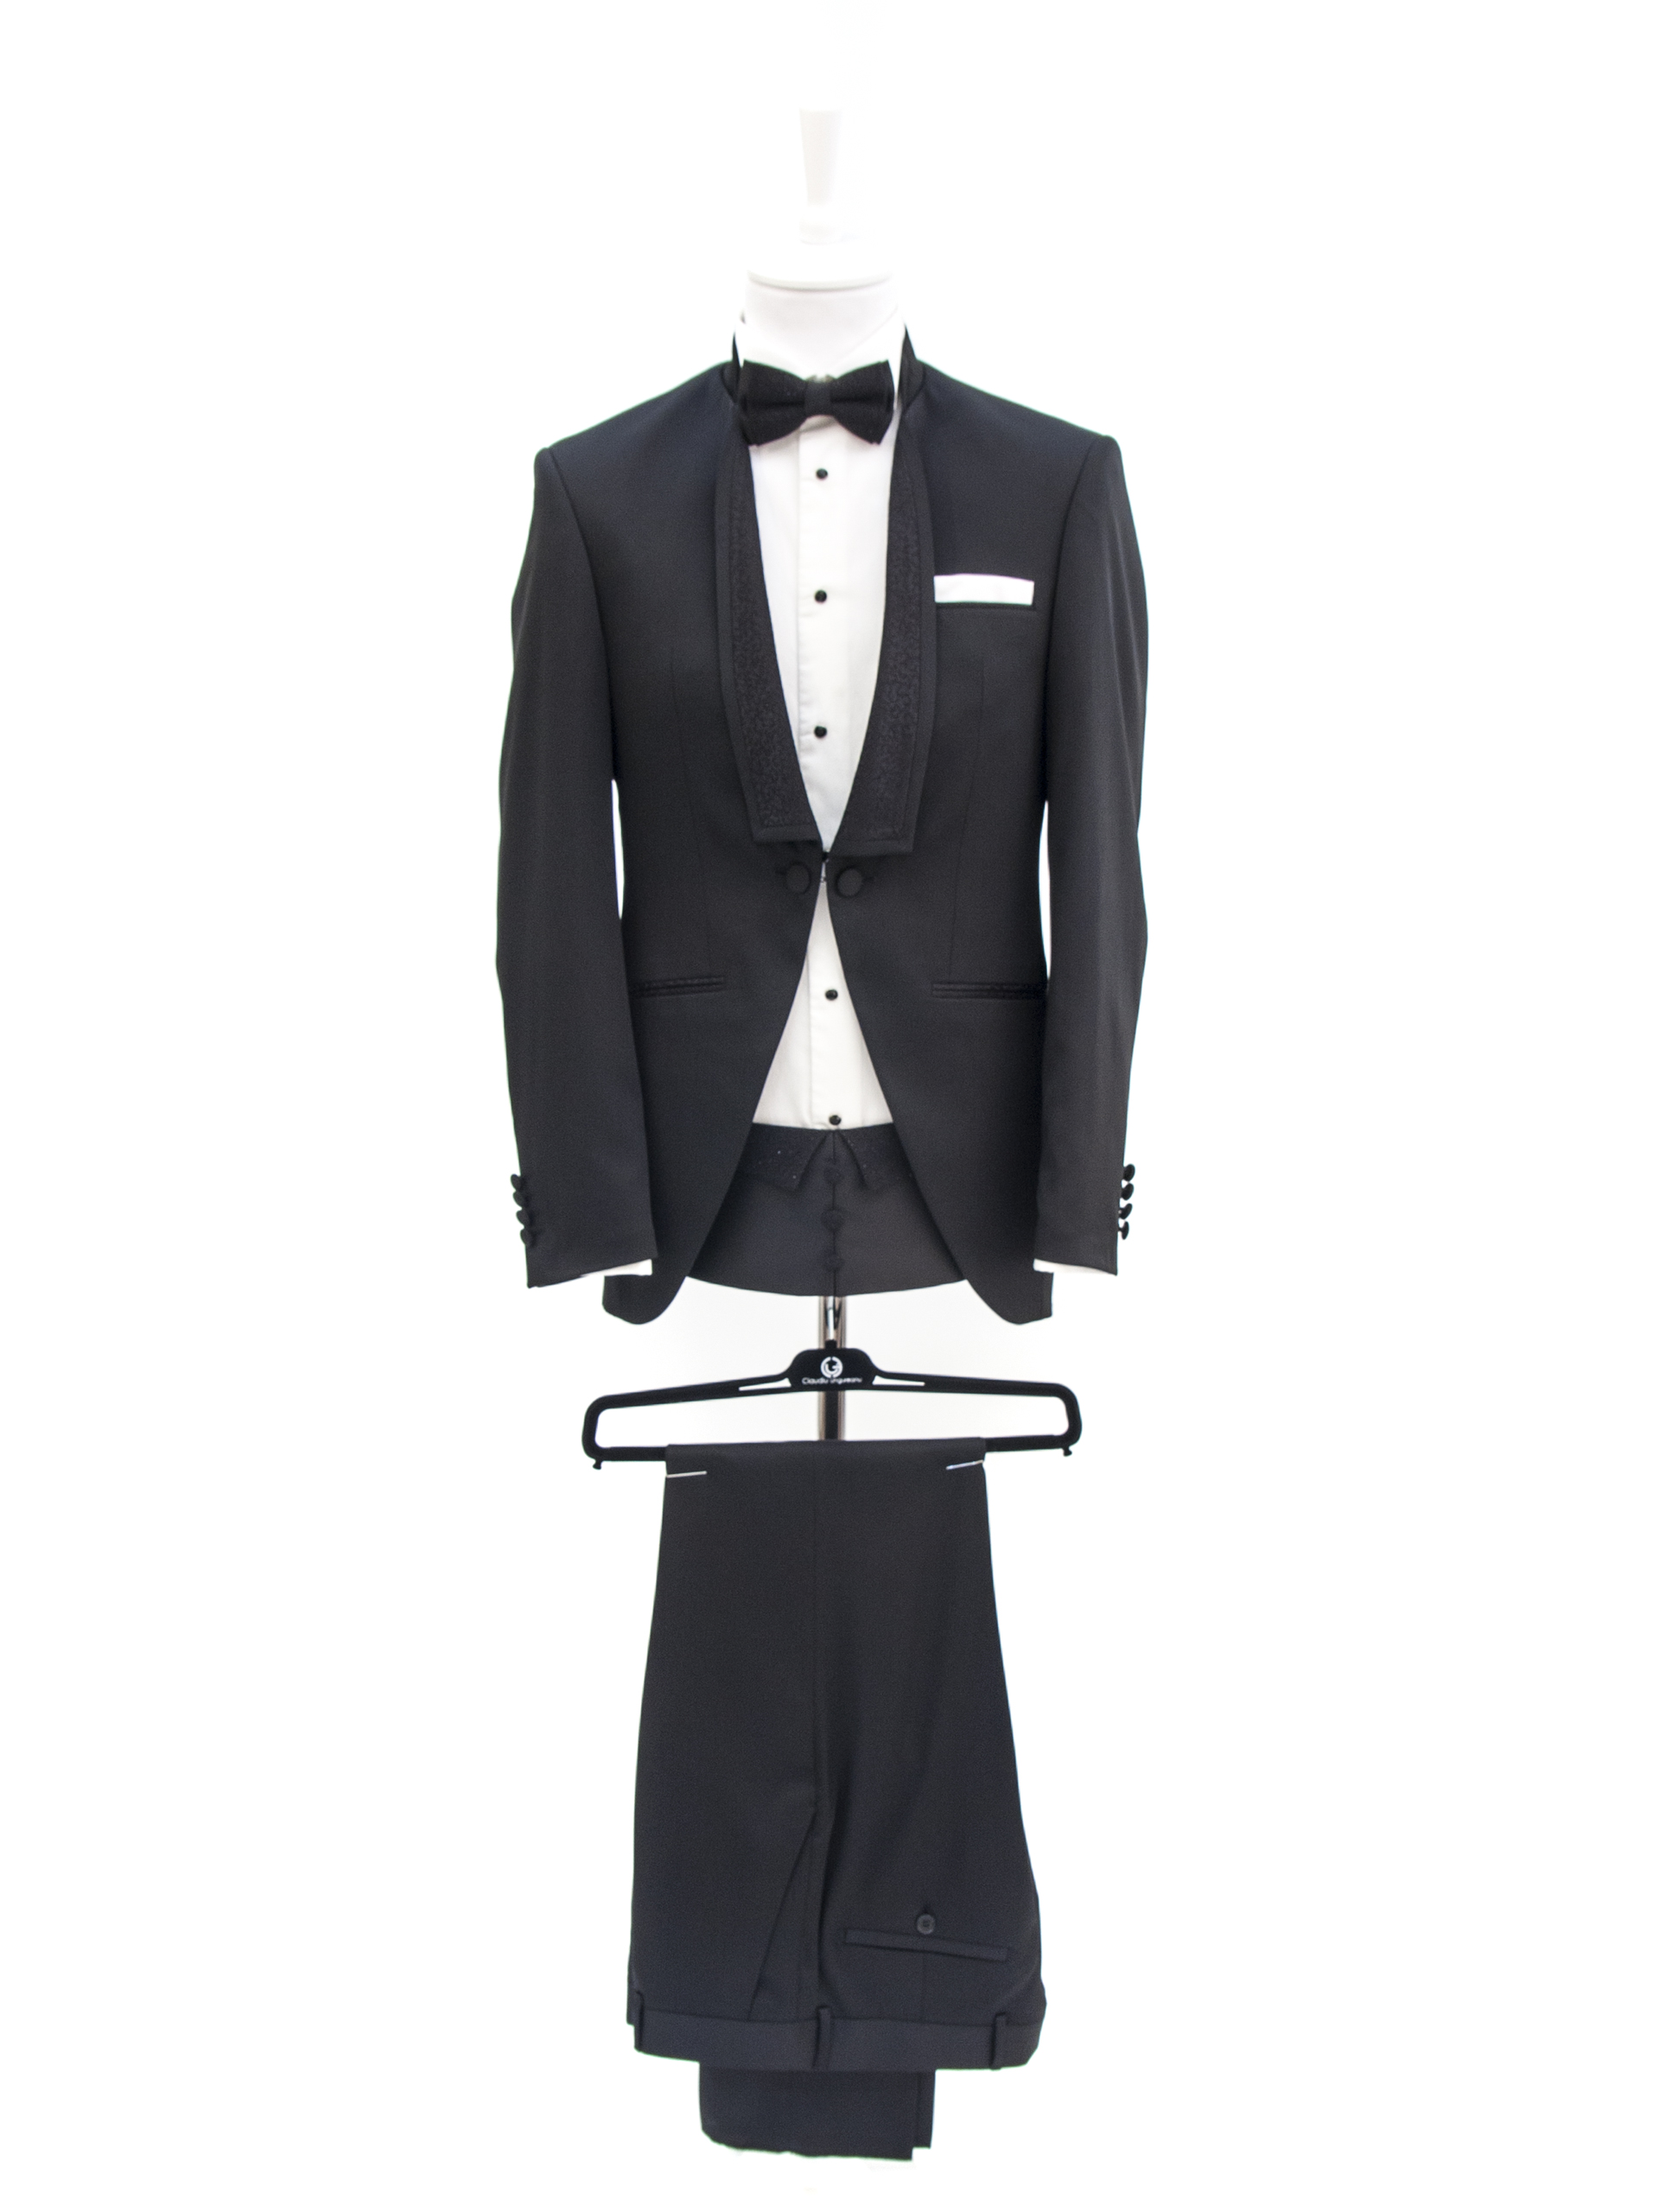 Bespoke Ceremony - Creative Black Suit Reinterpretat